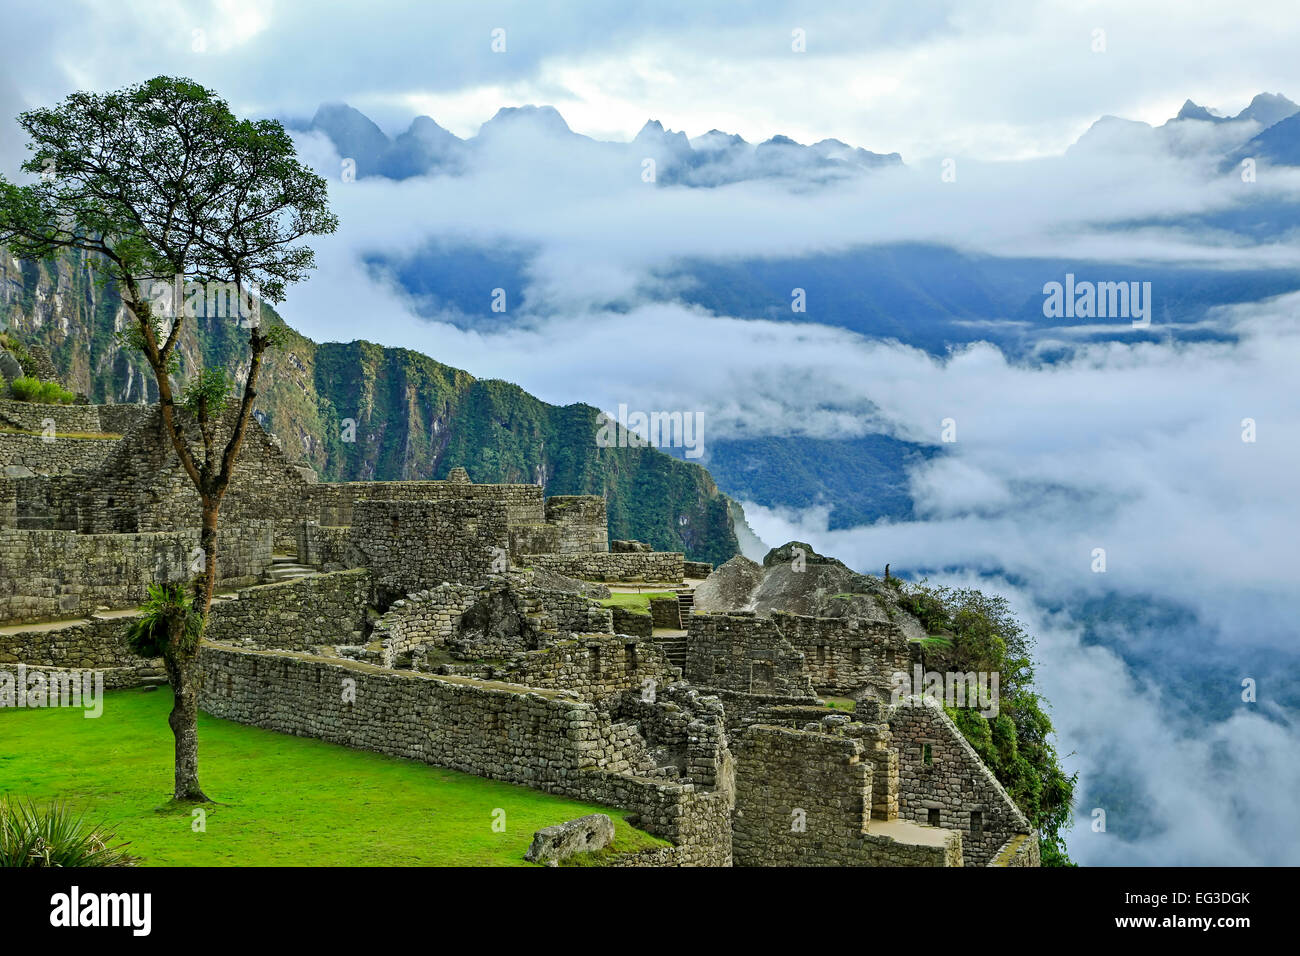 Low clouds over mountains, stone buildings, Machu Picchu Inca ruins, near Aguas Calientes, aka Machu Picchu Pueblo, - Stock Image